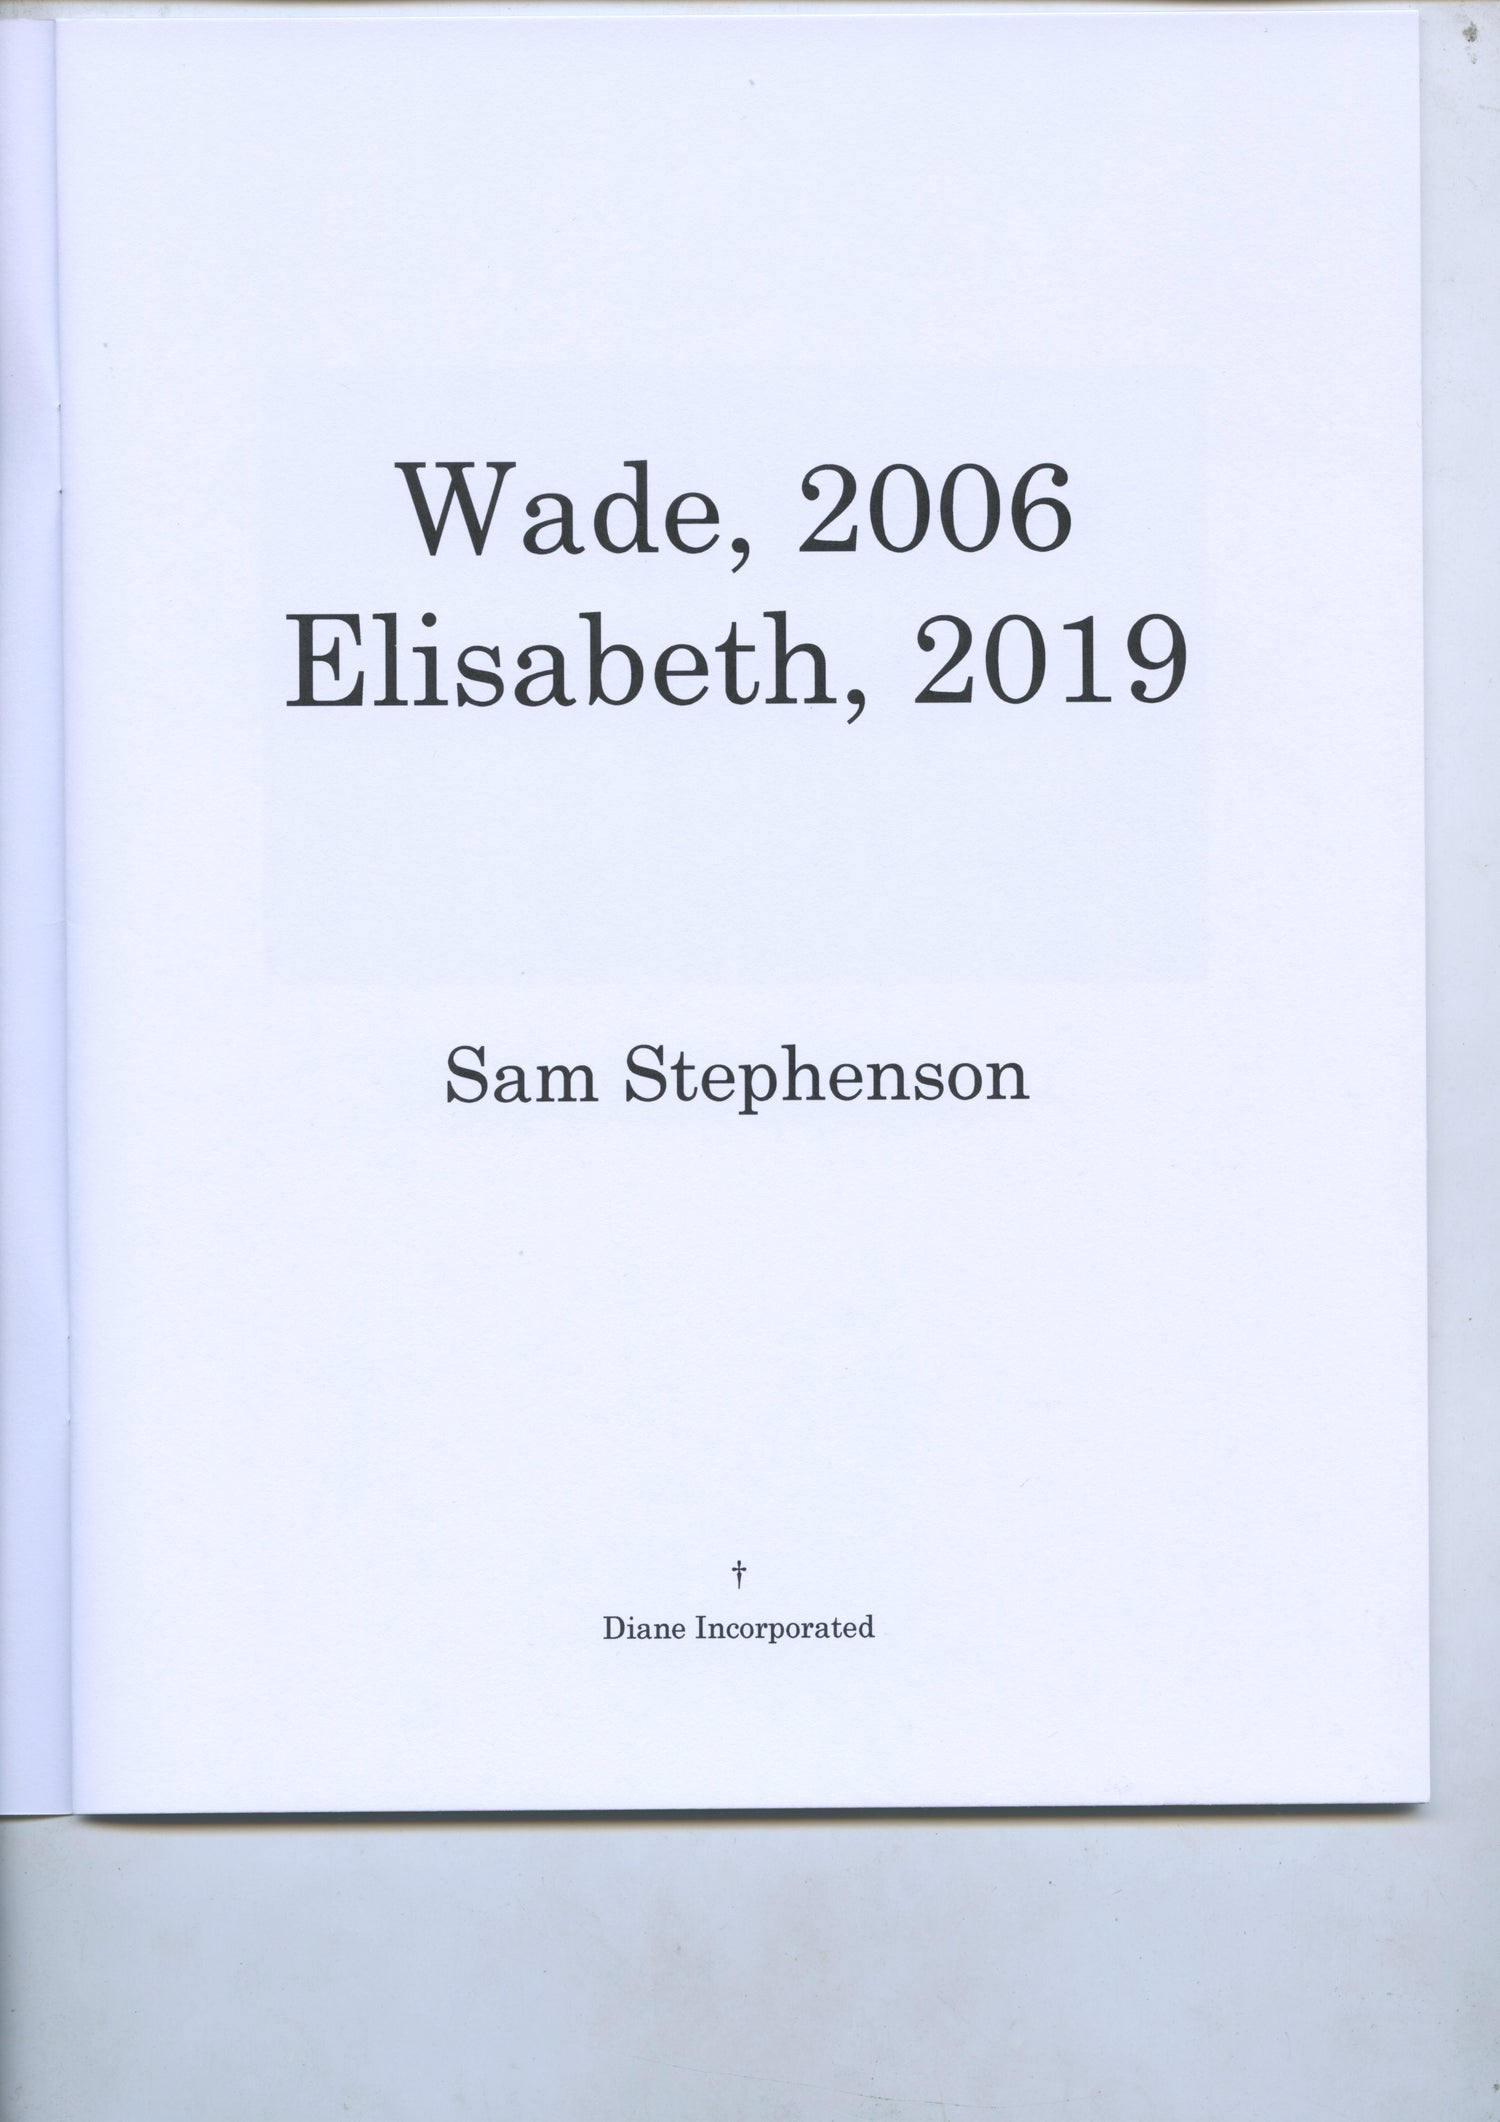 Image of Wade 2006, Elisabeth 2019 – Sam Stephenson